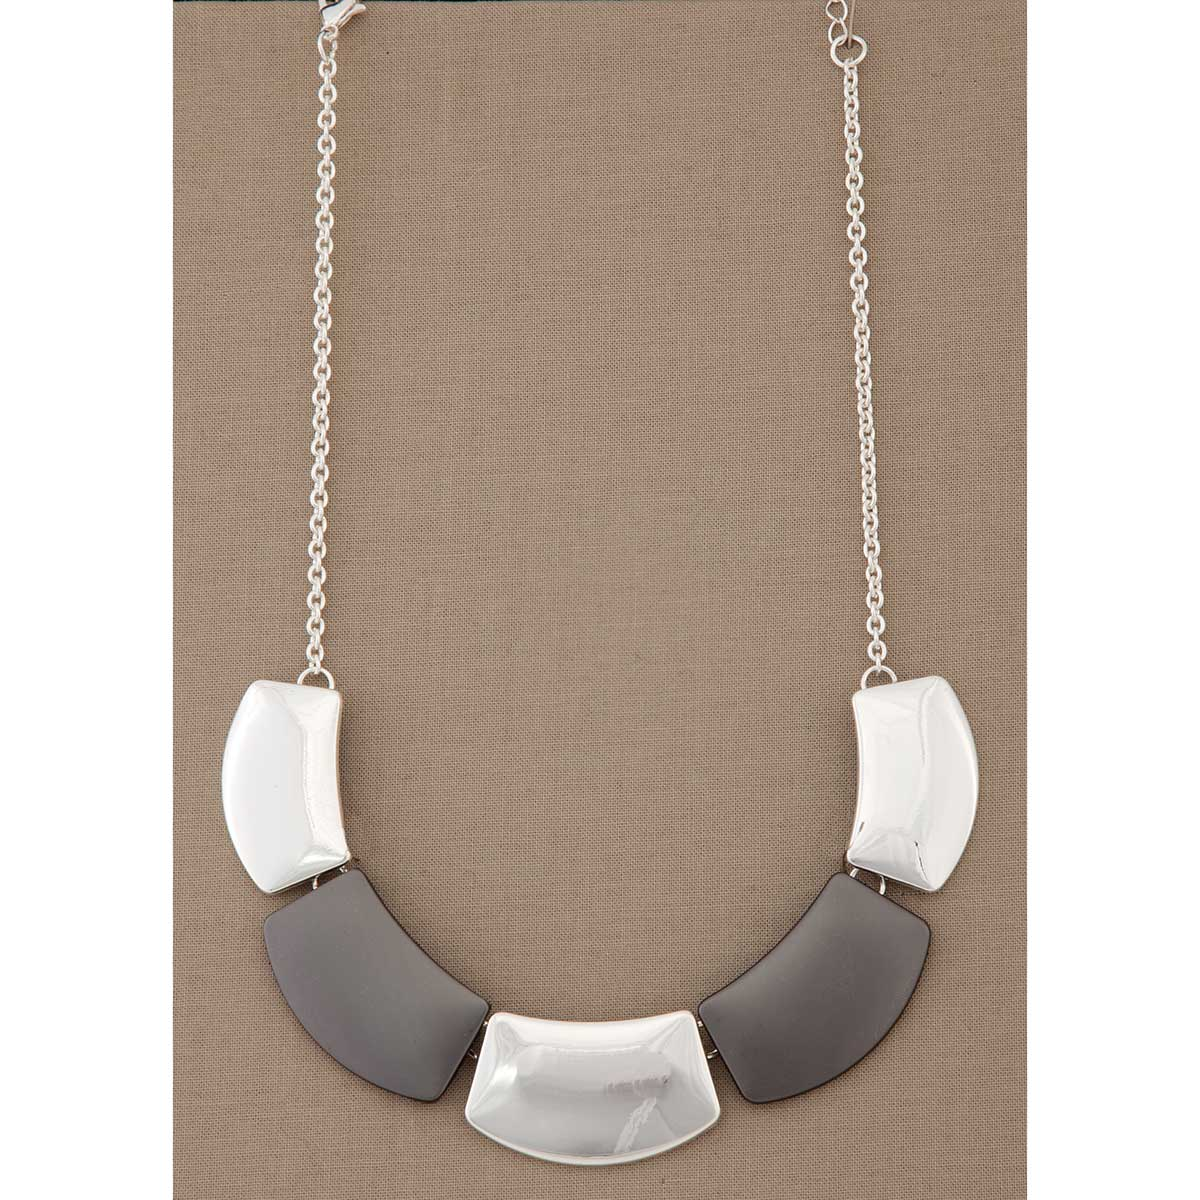 Silver and Gunmetal Rectangle Necklace